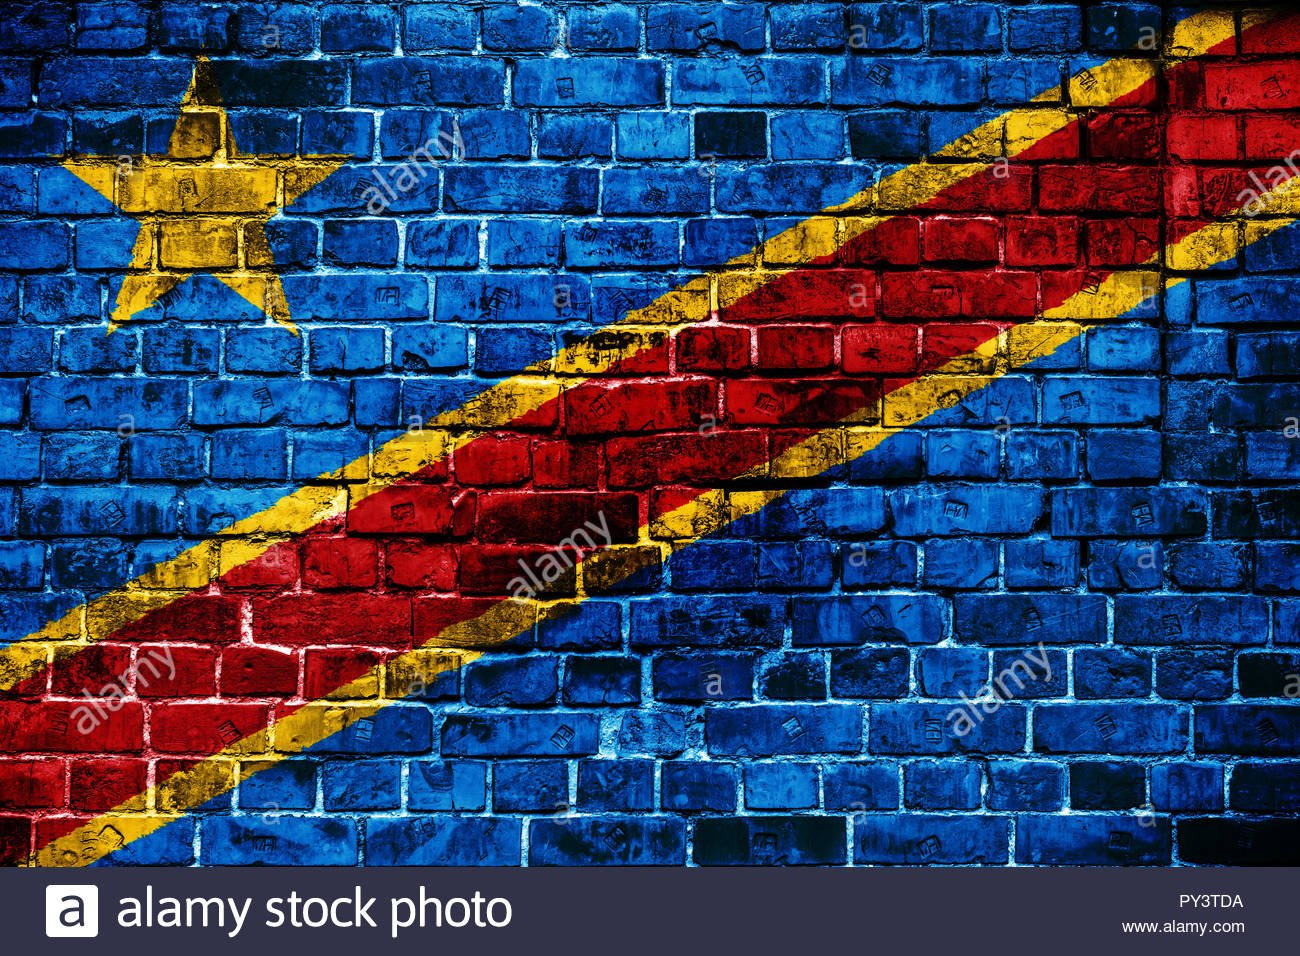 National flag of Democratic Republic of Congo on a brick 1300x956